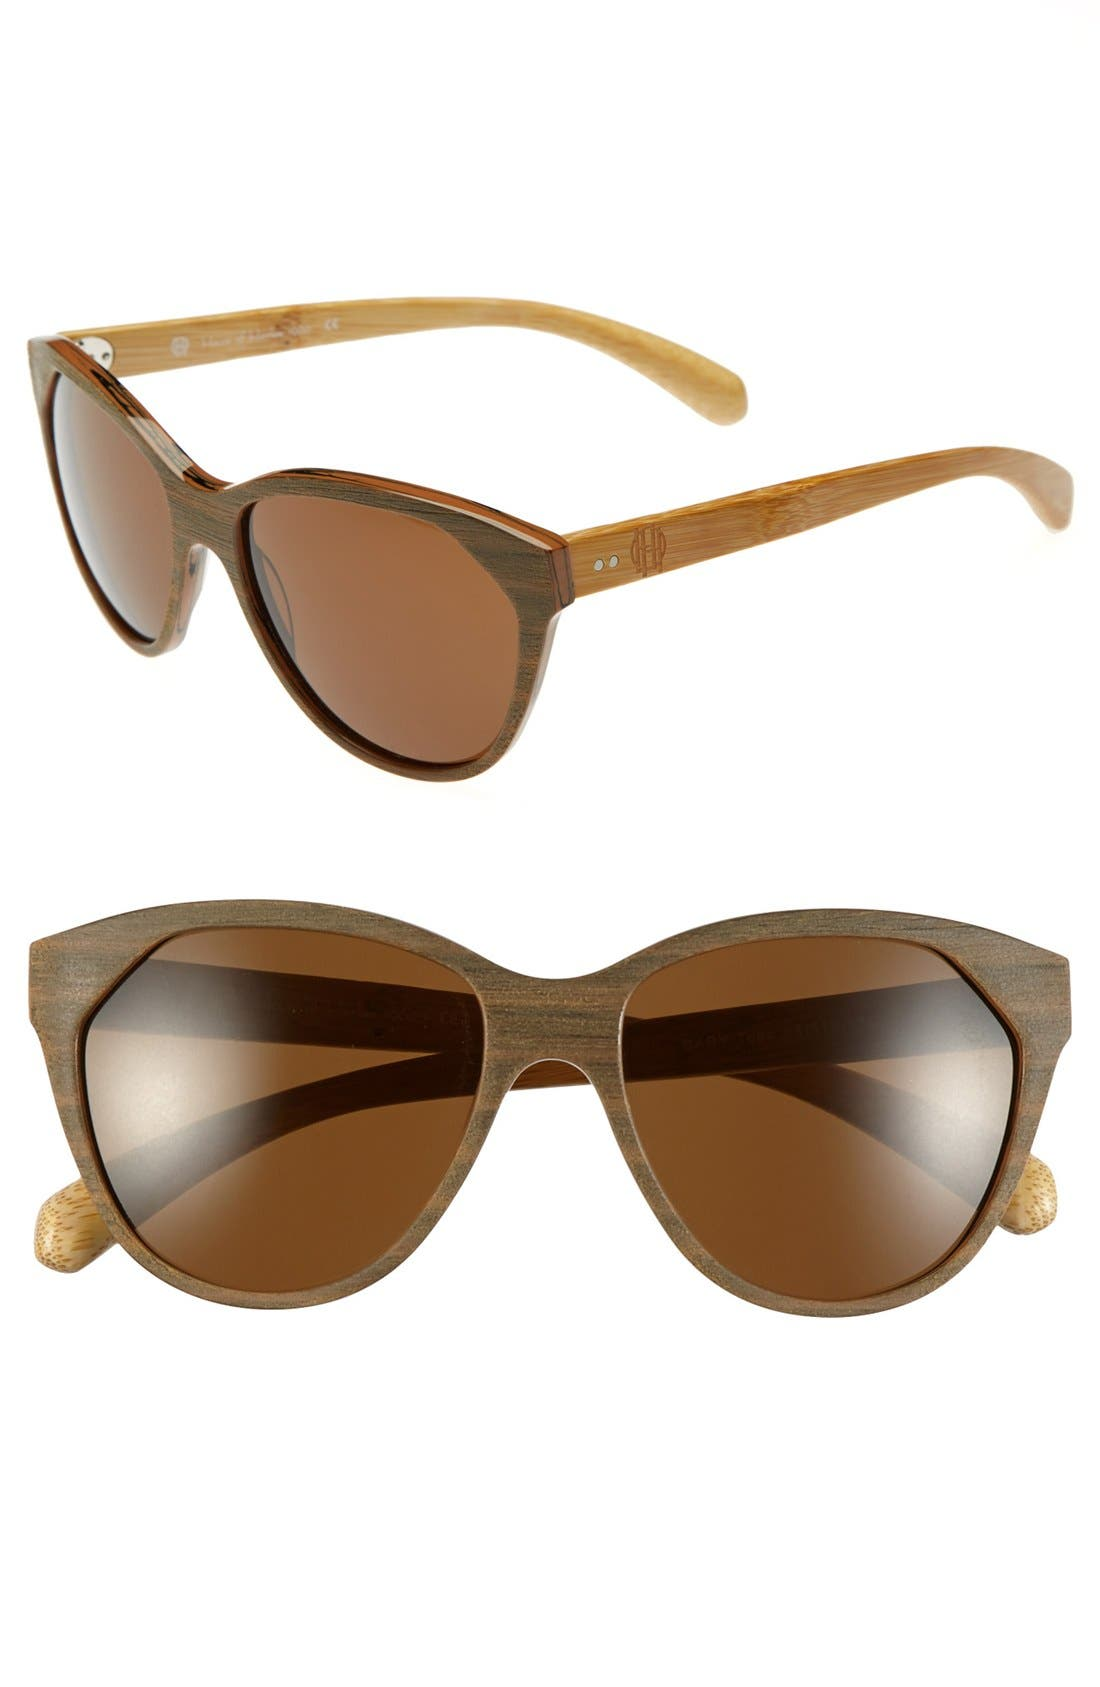 Main Image - House of Harlow 1960 'Cary' 55mm Sunglasses